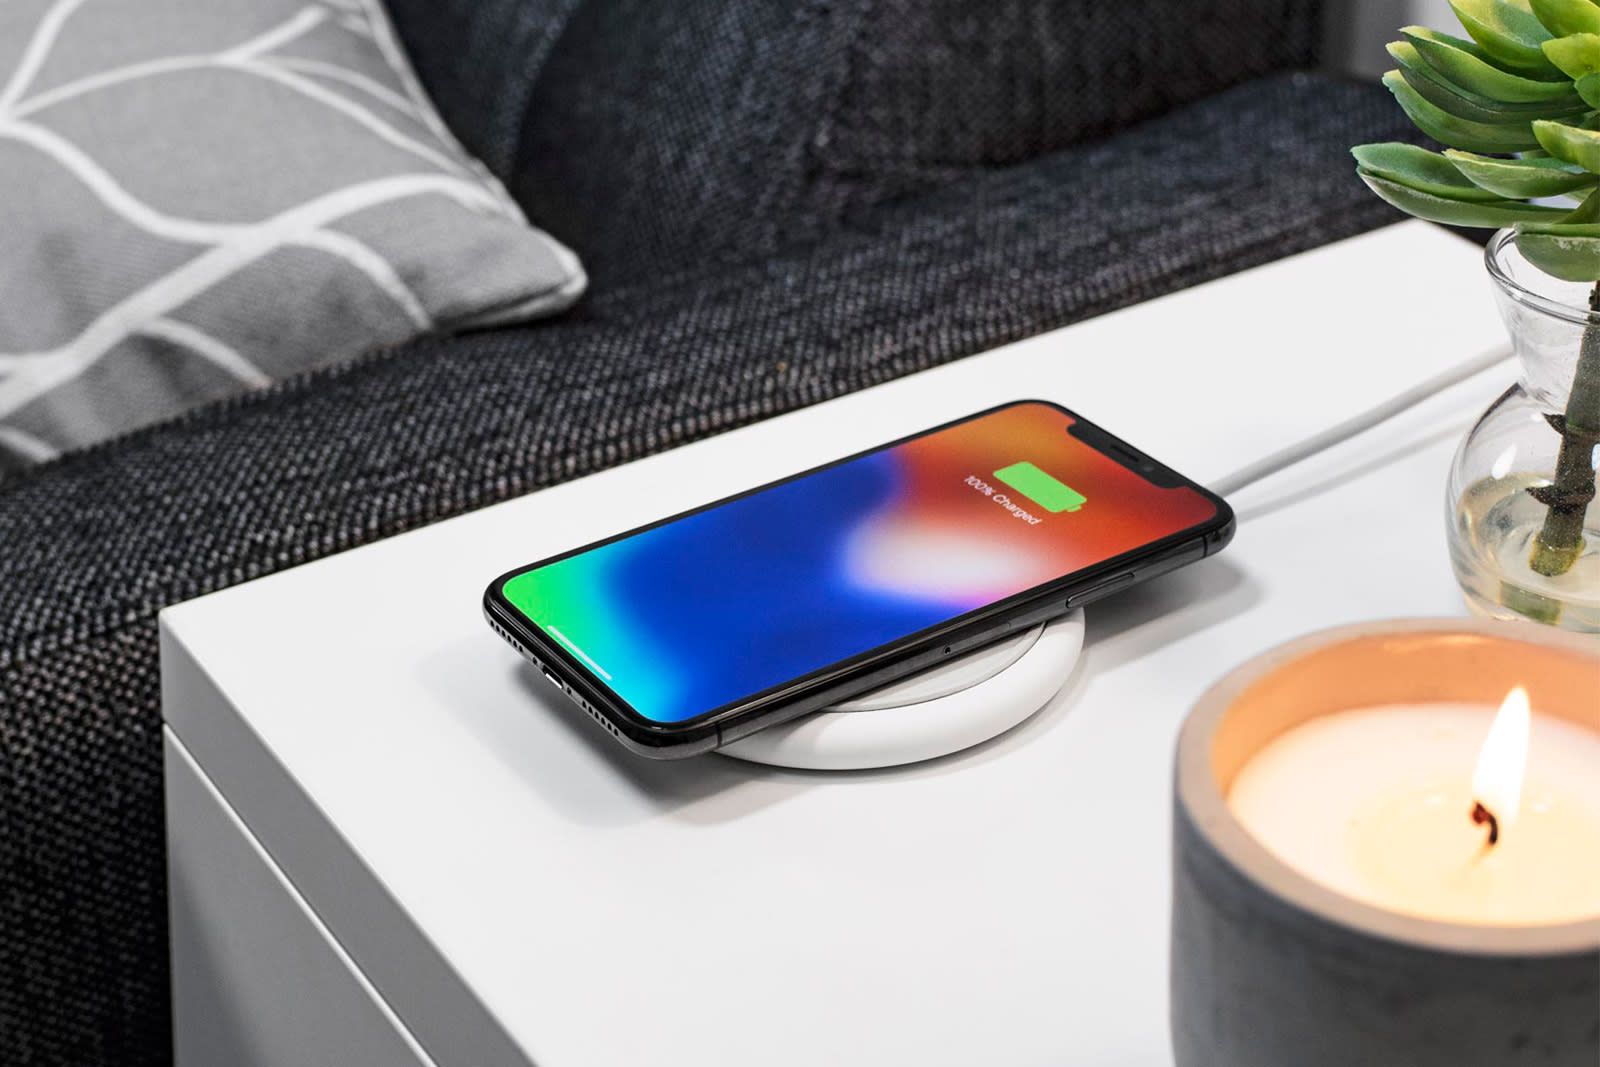 half off f8bff 05f2d Mophie pad offers fast wireless charging for Apple and Samsung phones